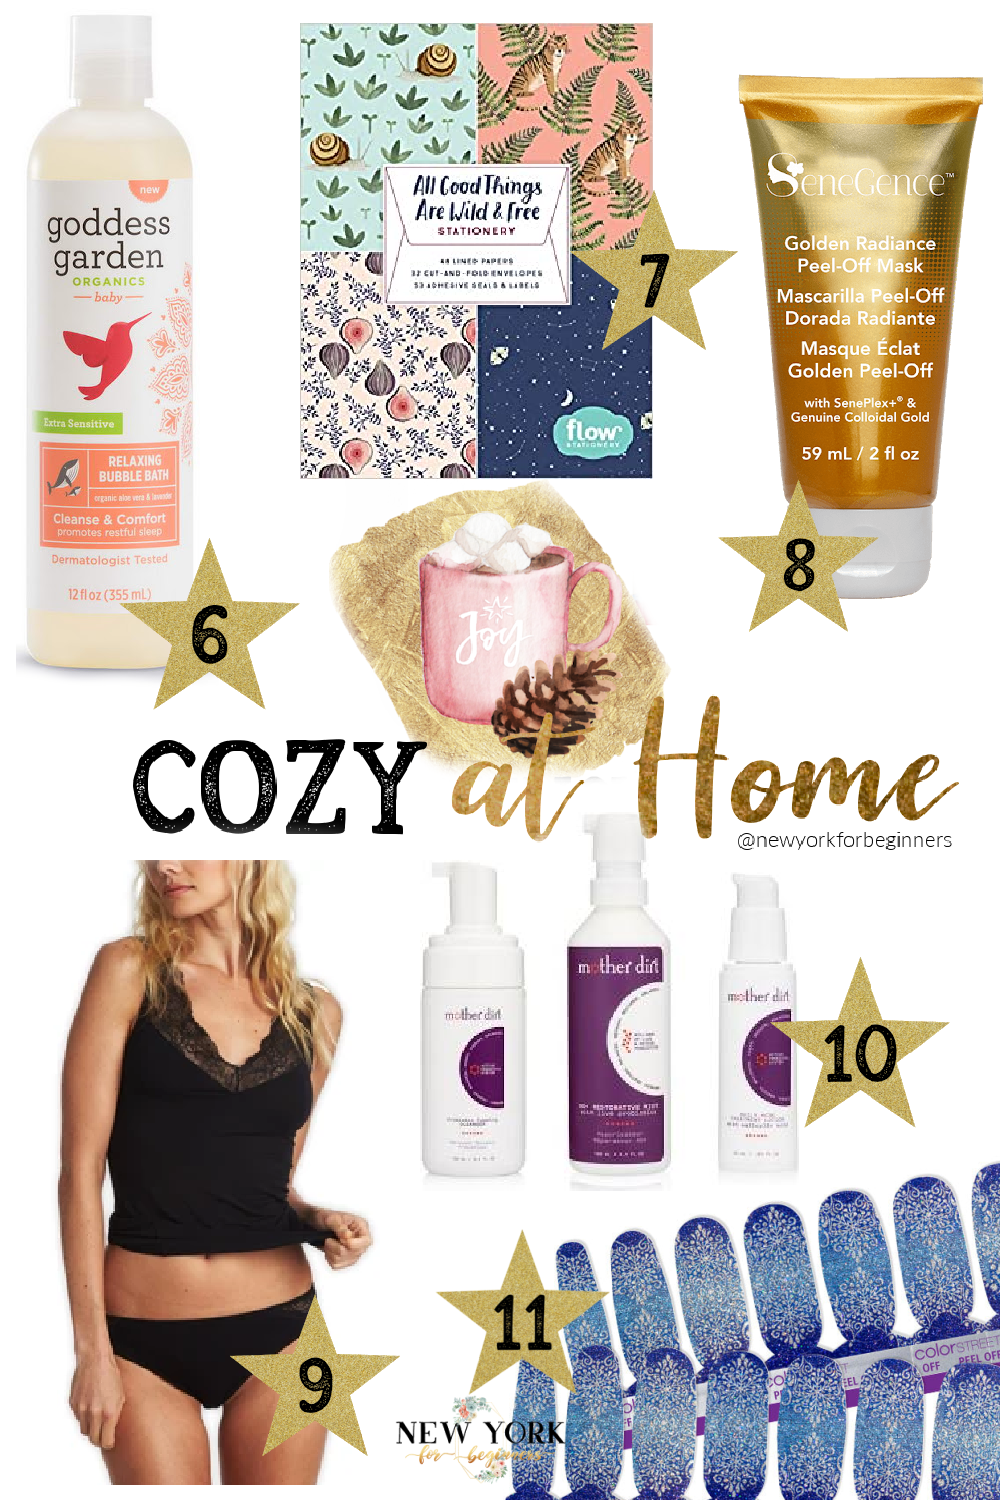 Cozy at home gift ideas